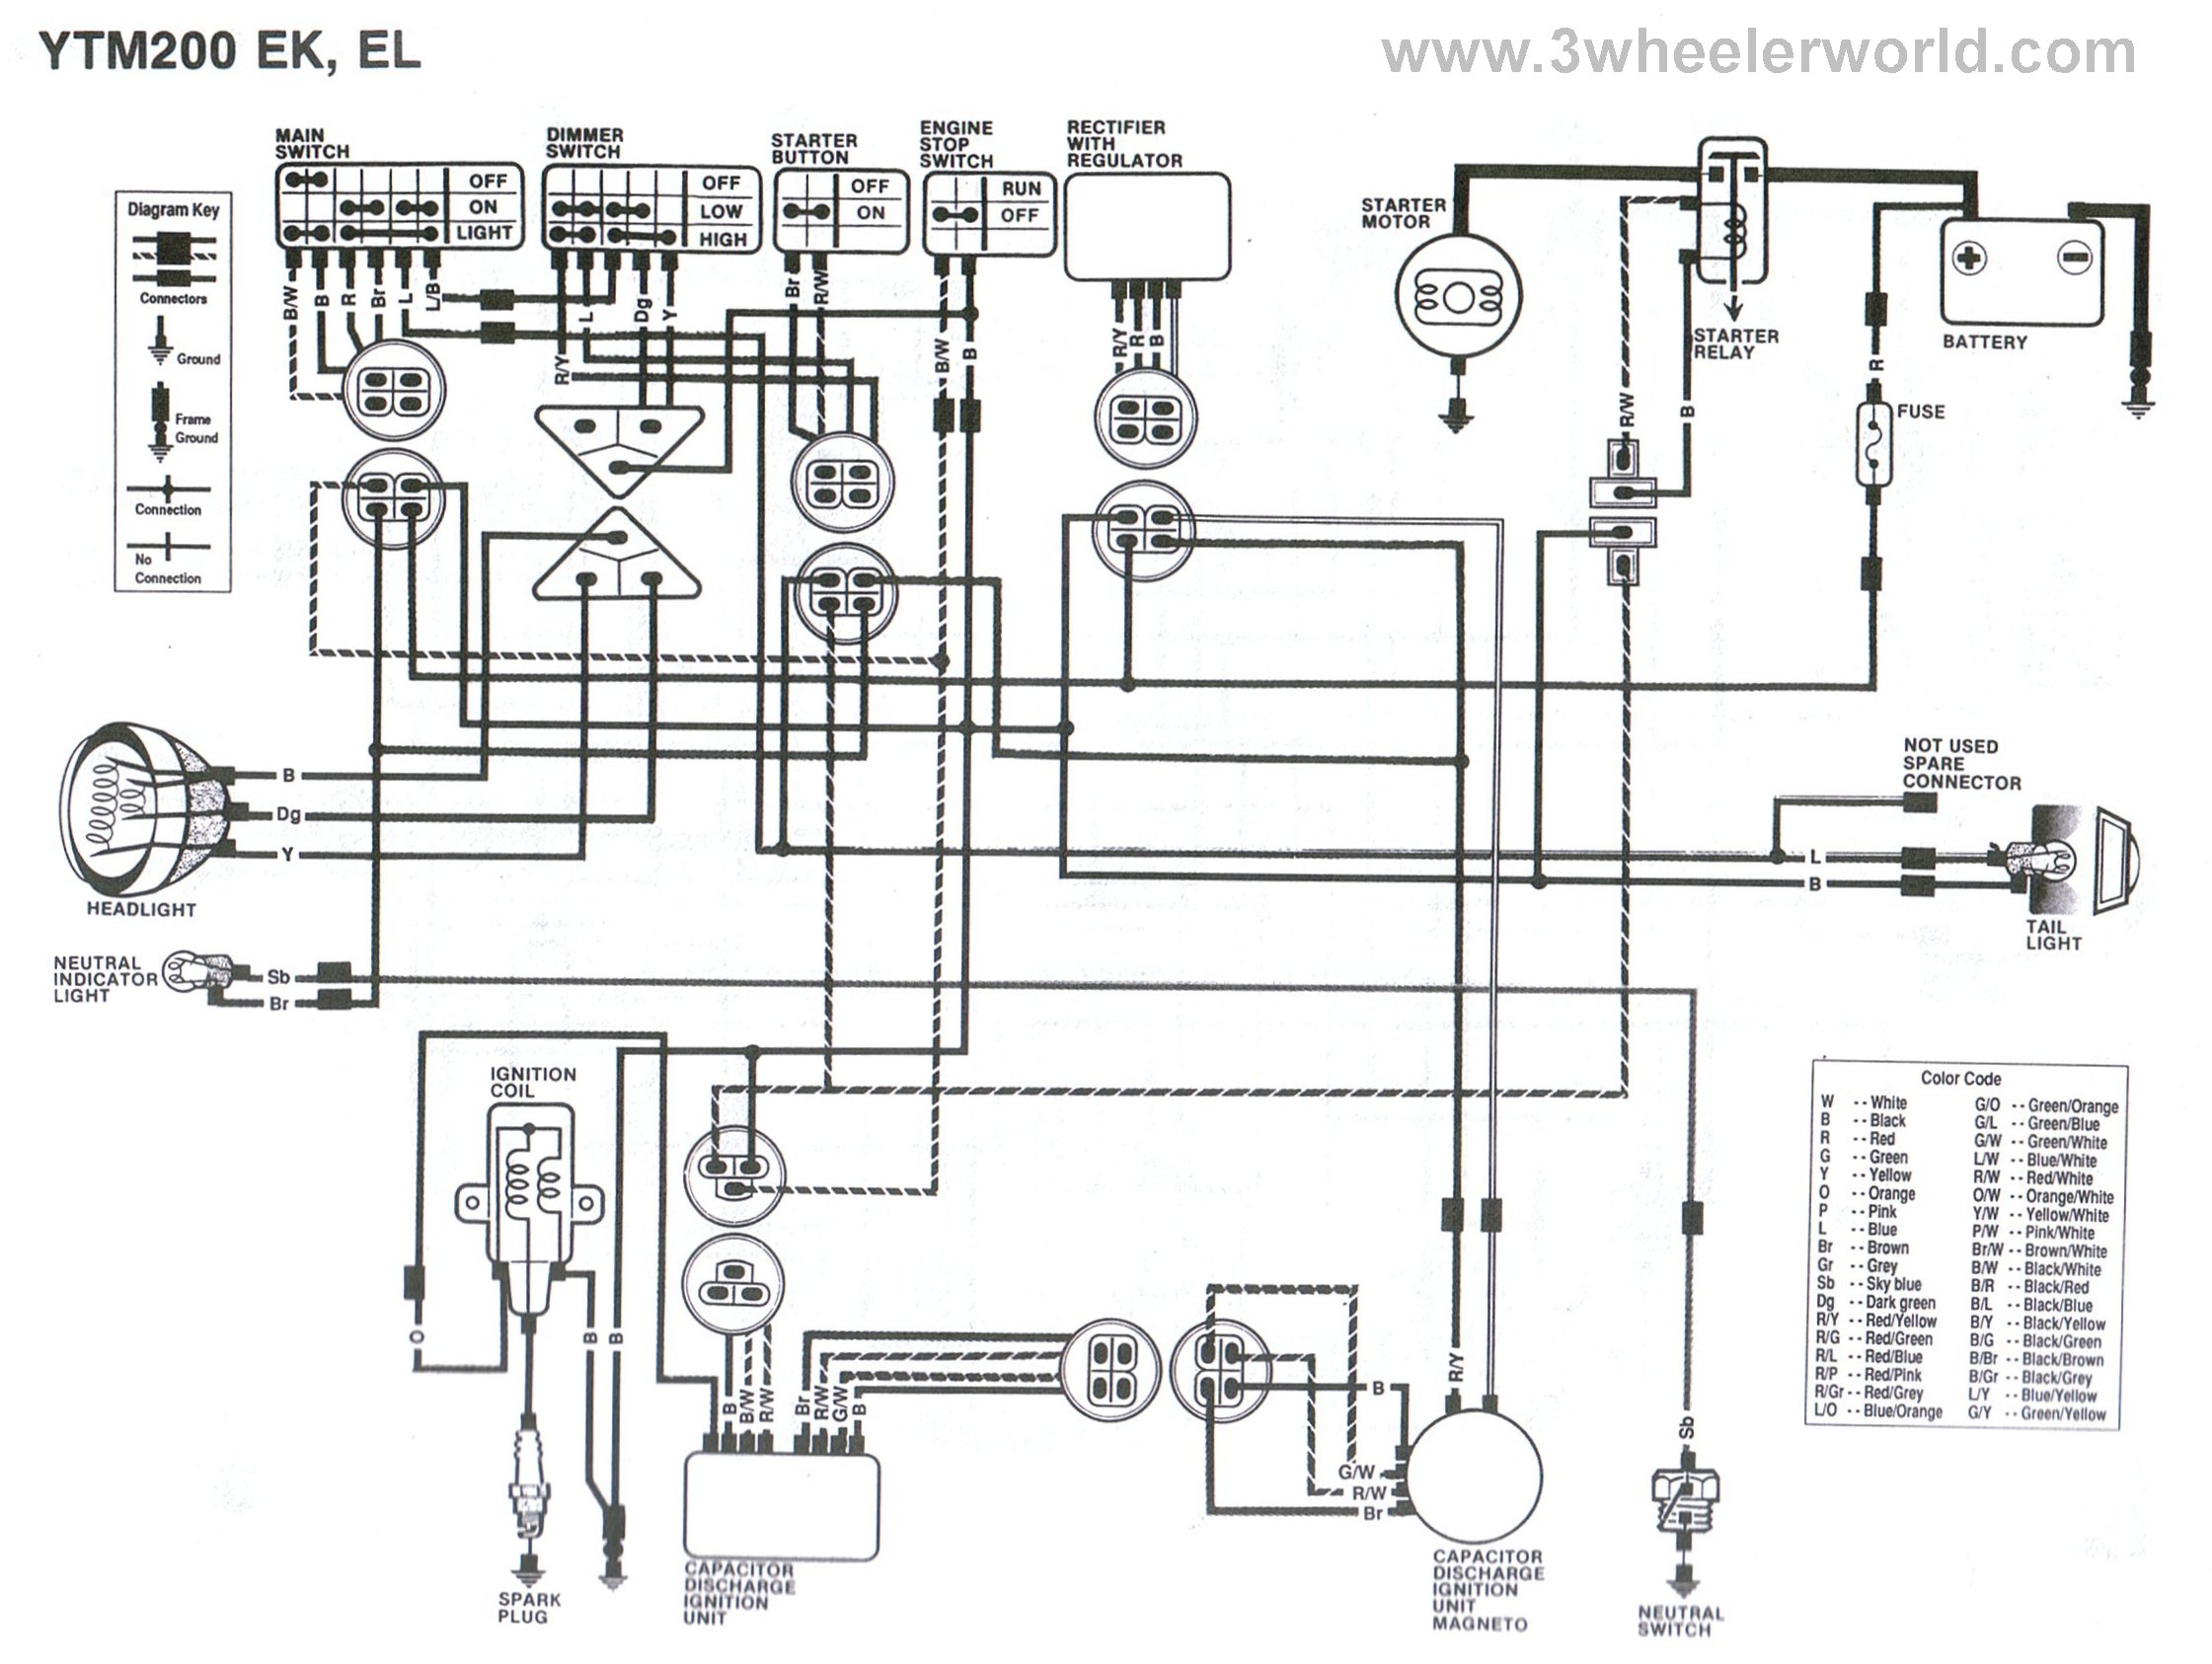 YTM200EKEL 3 wheeler world tech help yamaha wiring diagrams yamaha blaster 200 wiring diagram at soozxer.org